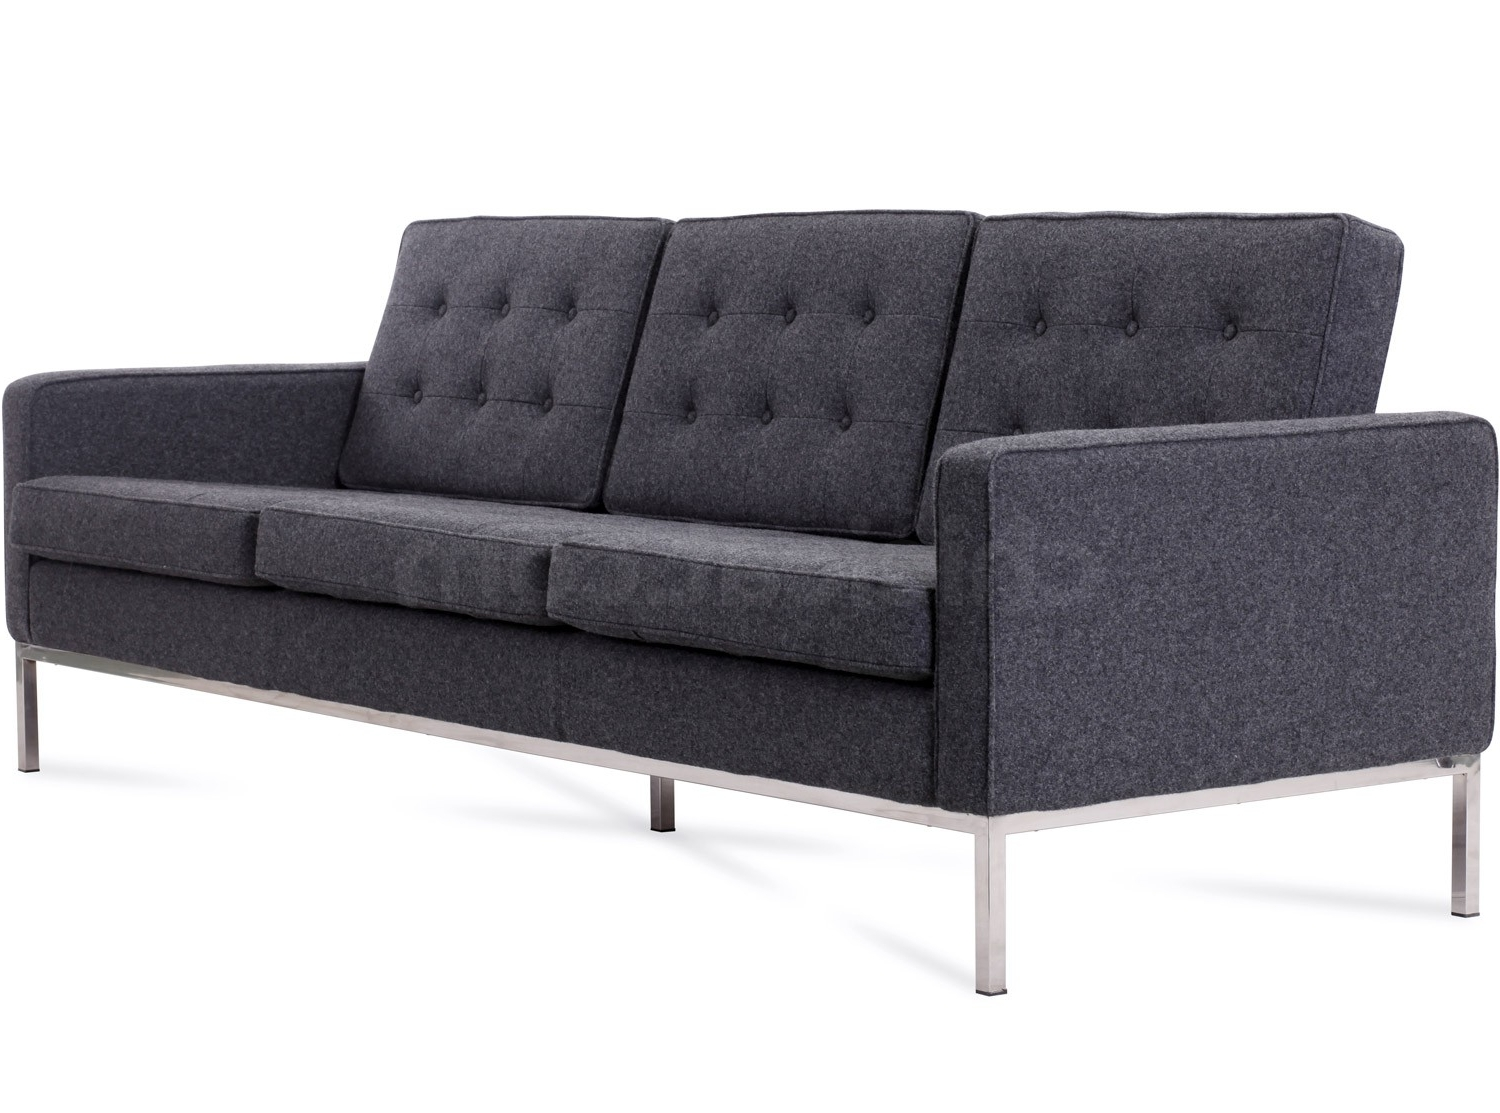 Florence Sofas And Loveseats Throughout Widely Used Florence Knoll Sofa Replica – Fjellkjeden (View 4 of 20)